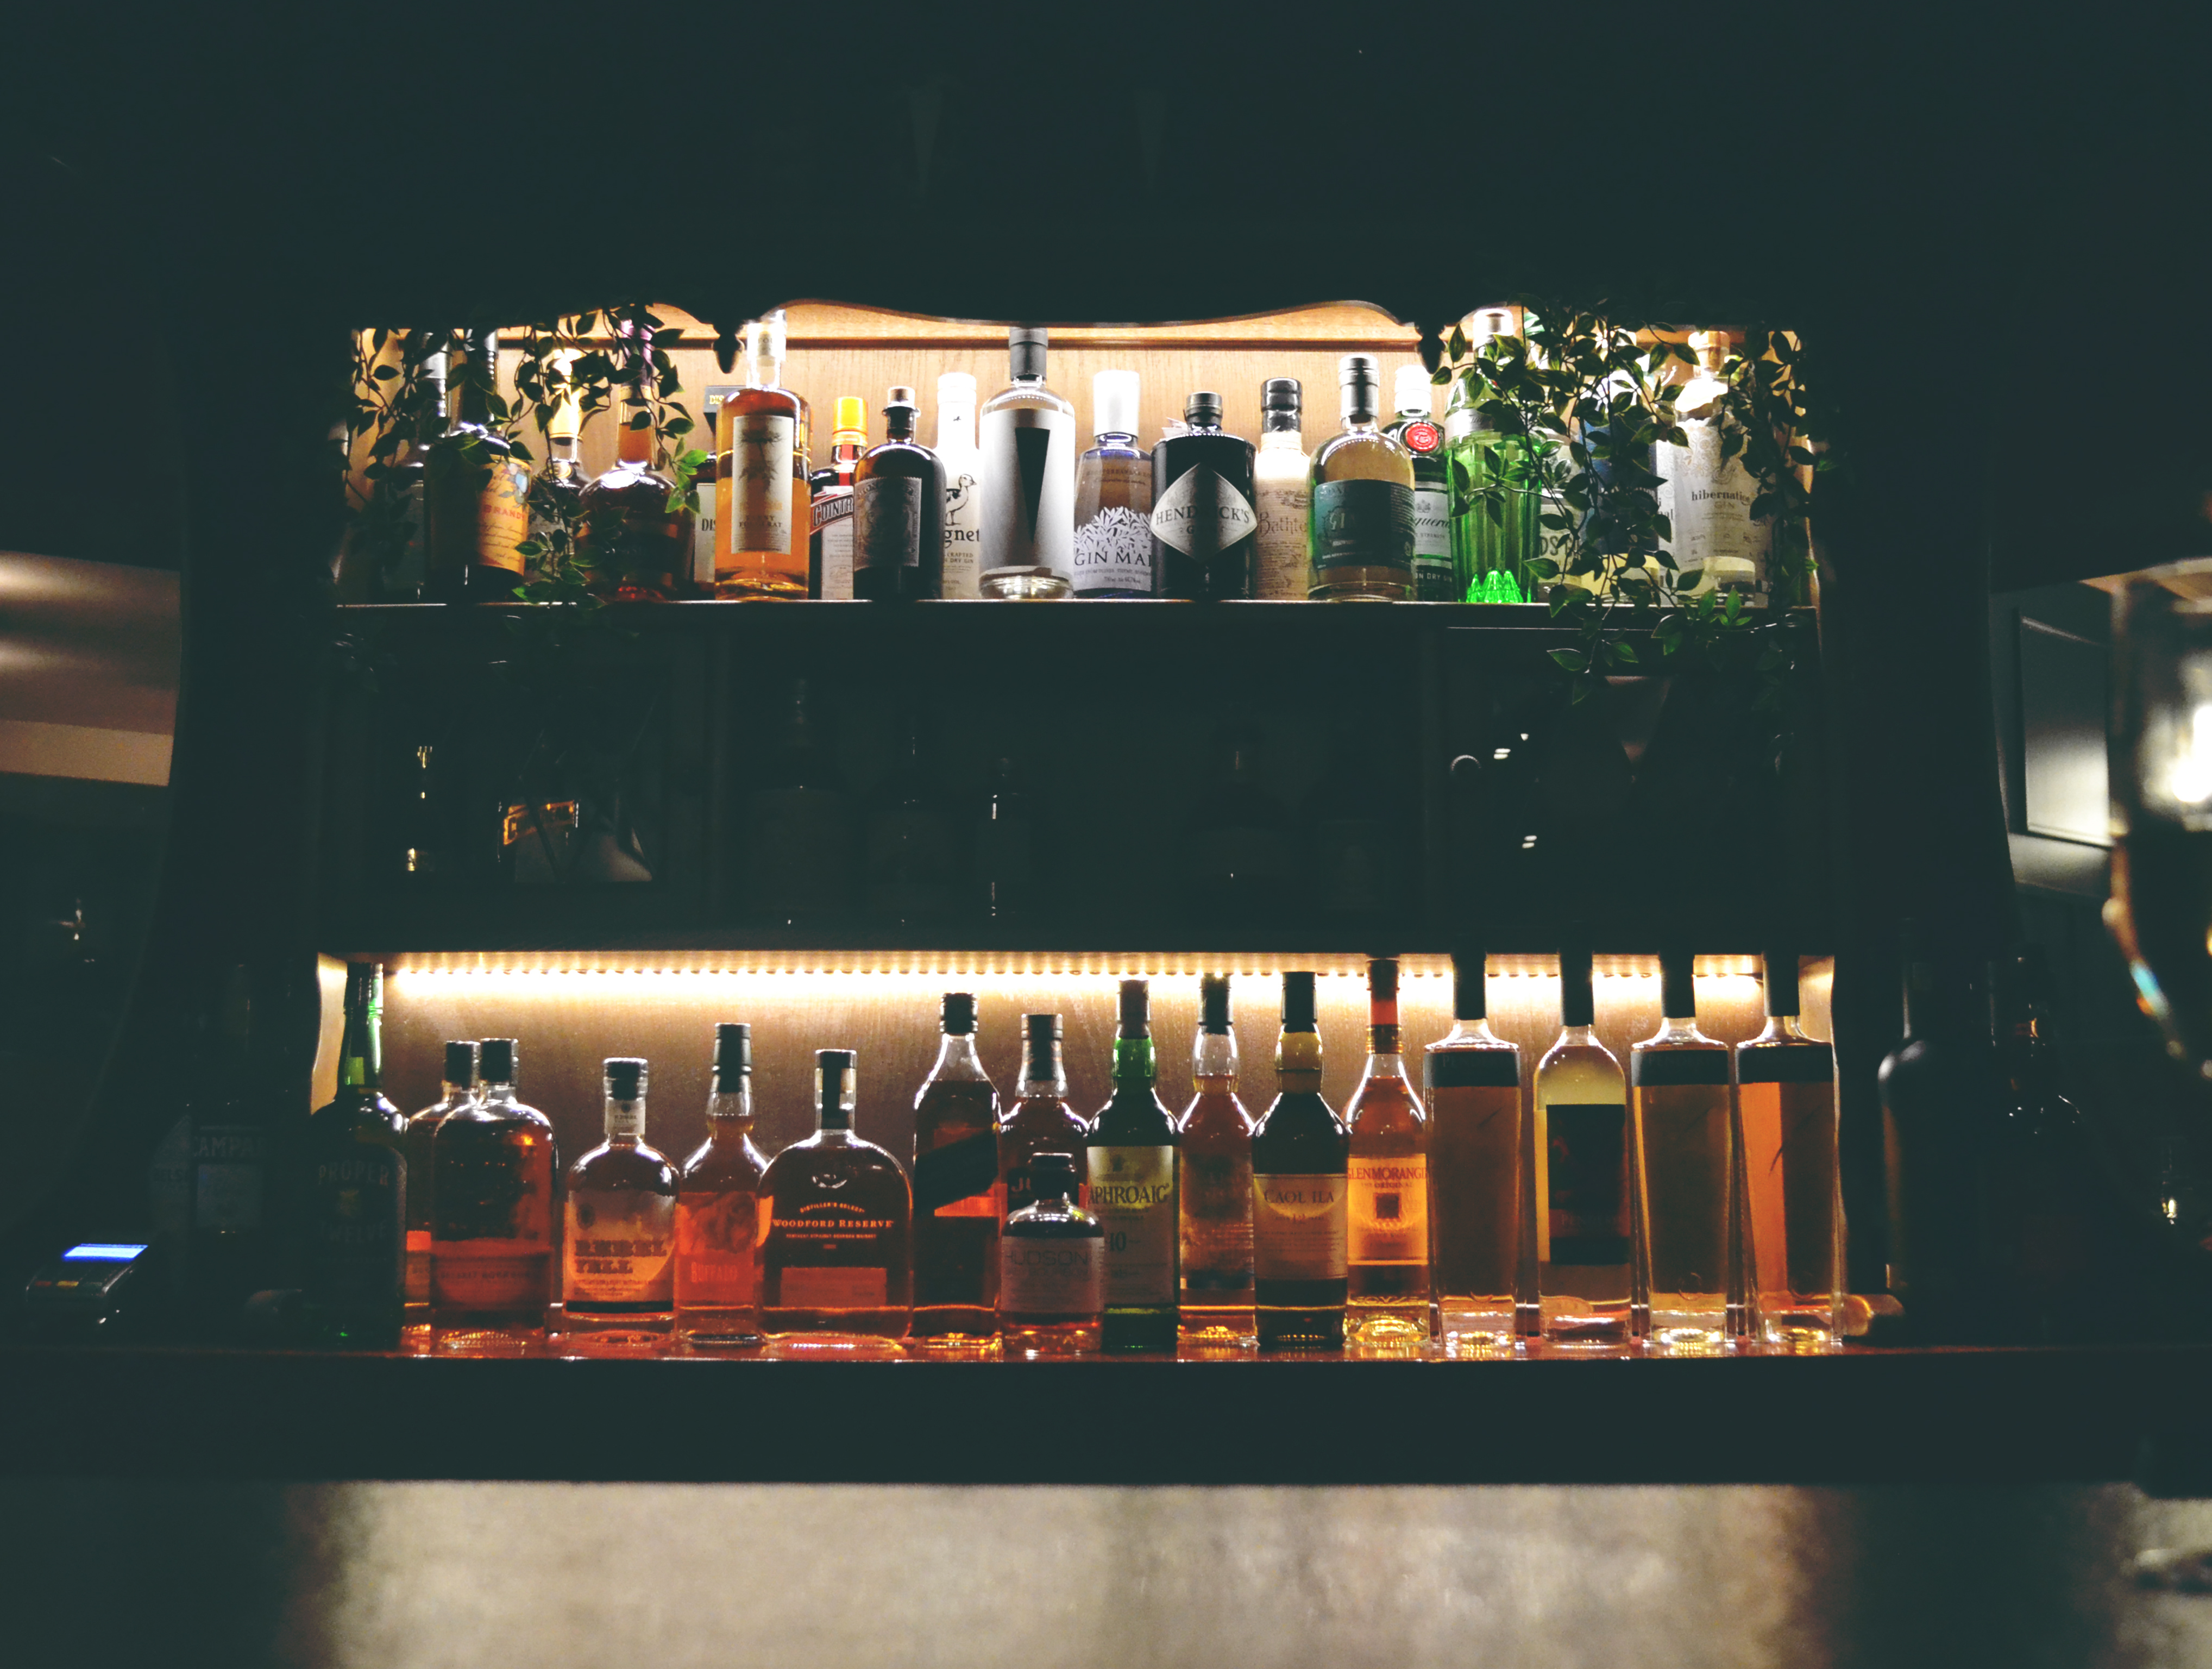 The bar fully stocked at Thomas by Tom Simmons in Cardiff